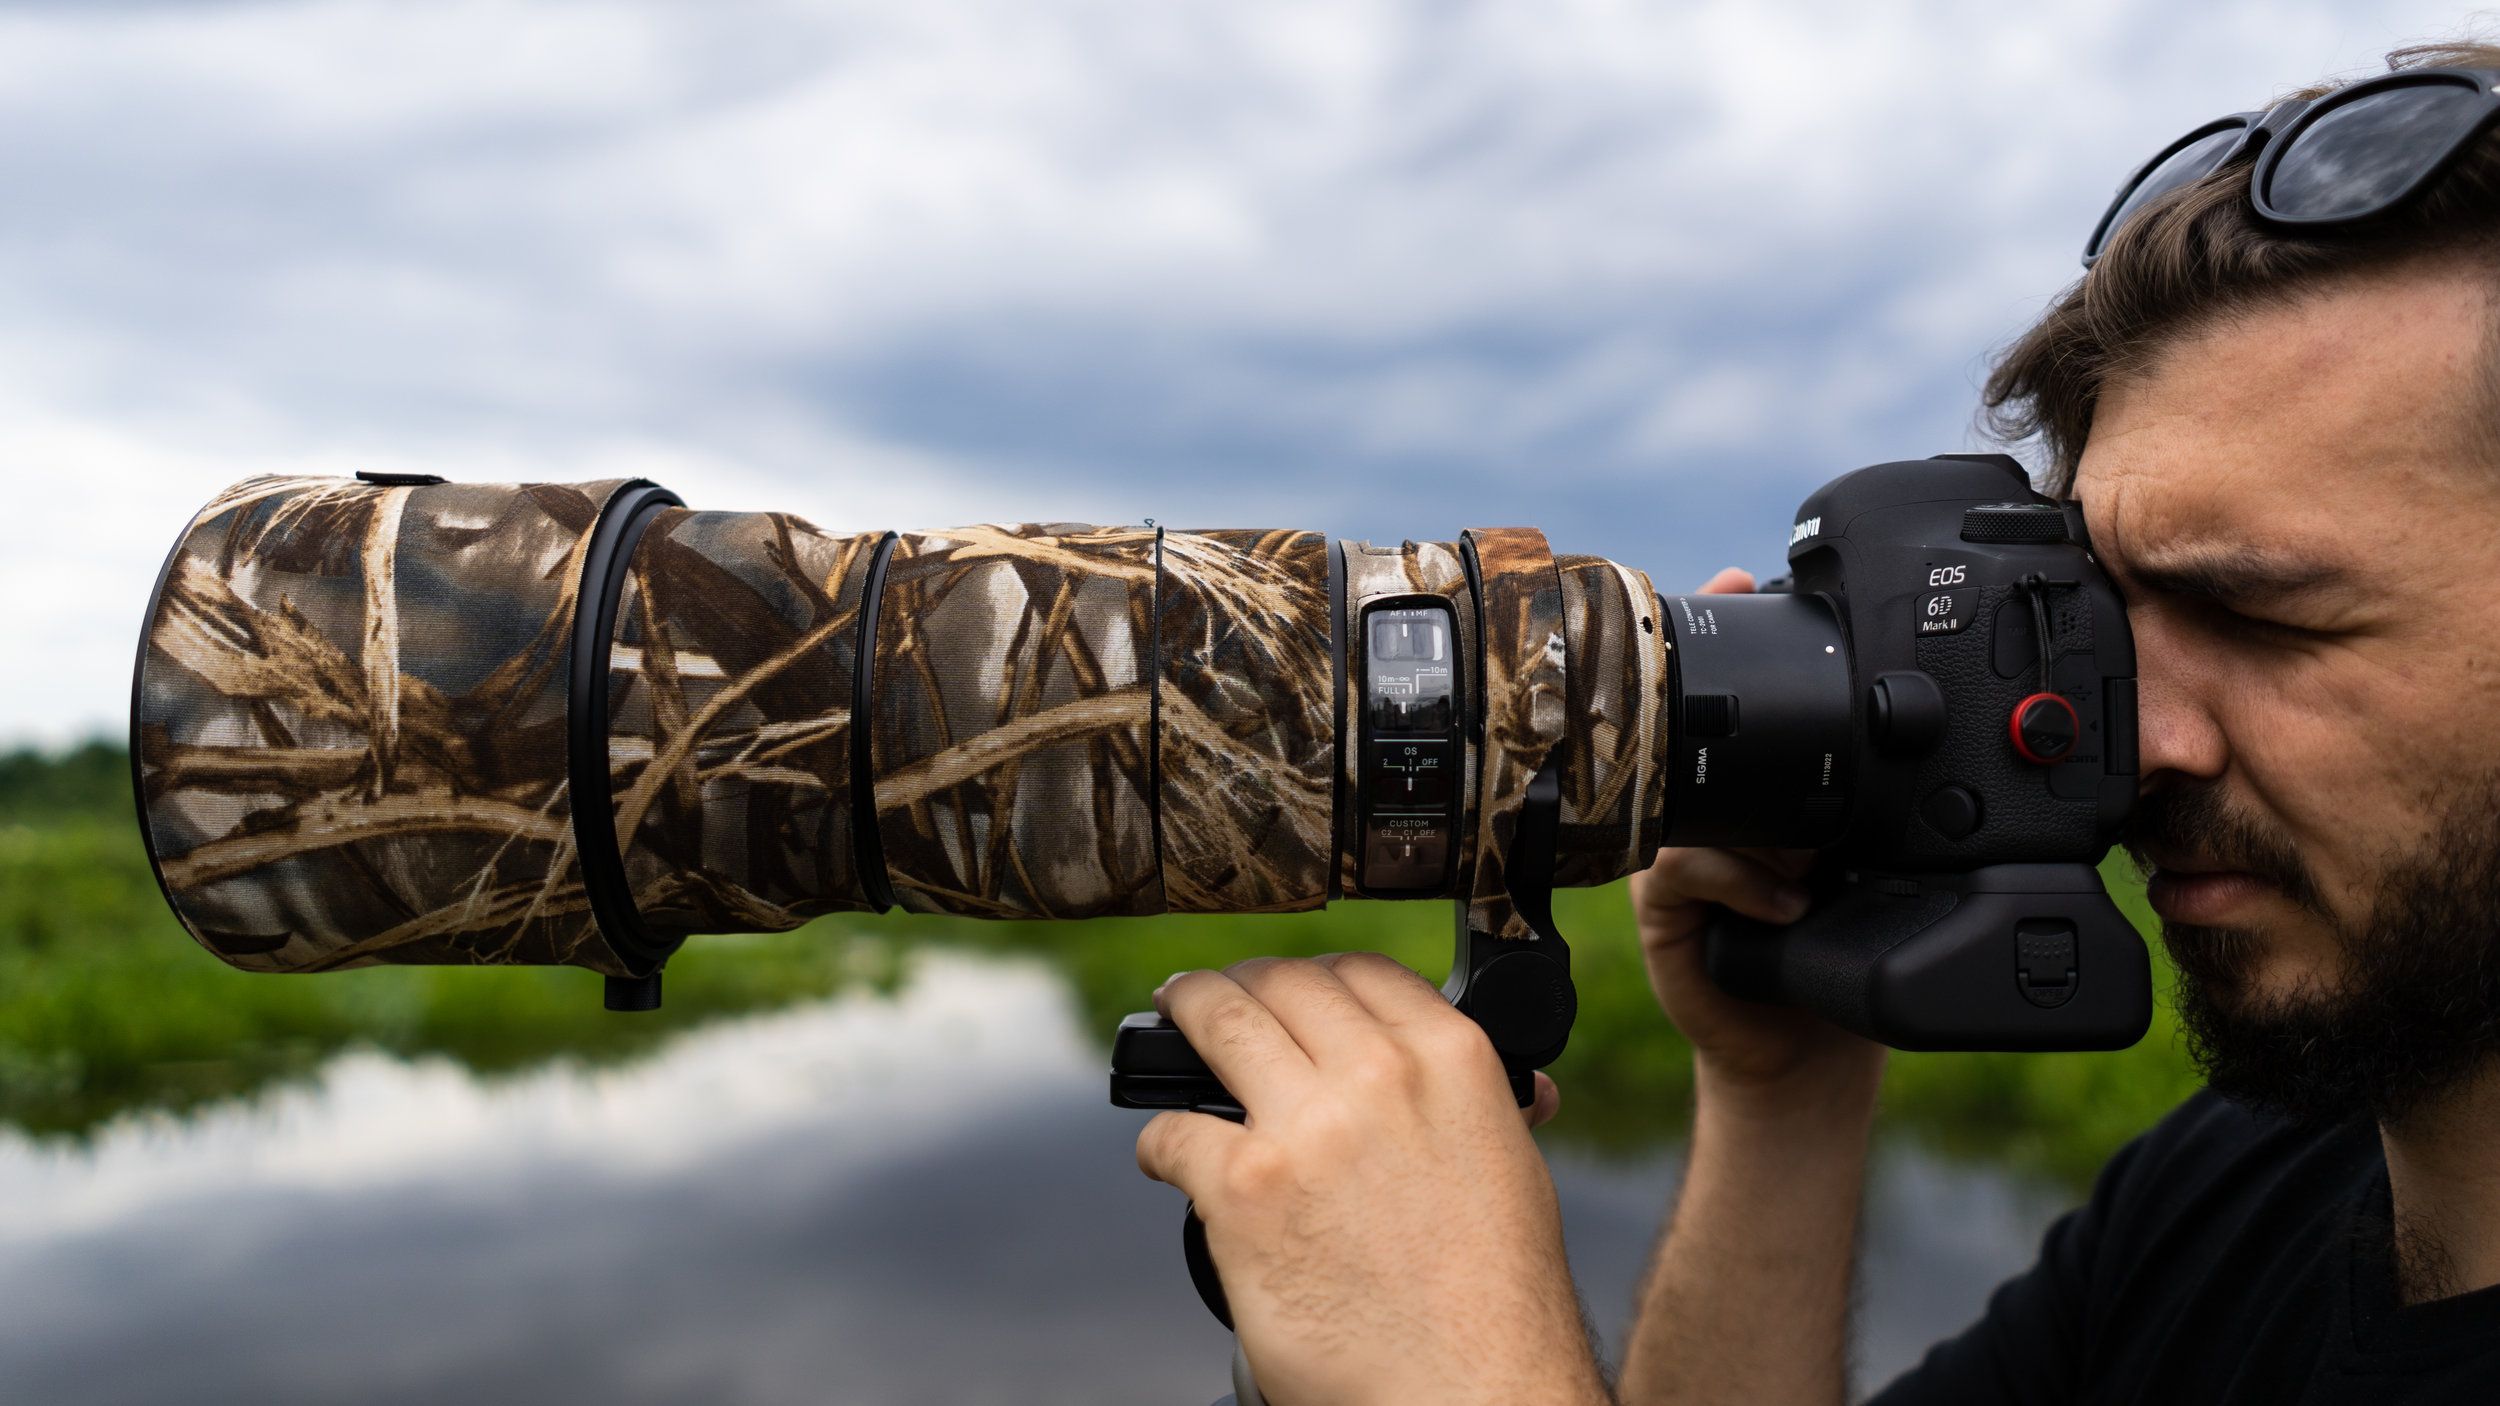 Me shooting with the massive Sigma 120-300mm F2.8 Sports DG APO OS HSM lens with a camouflage LensCoat.